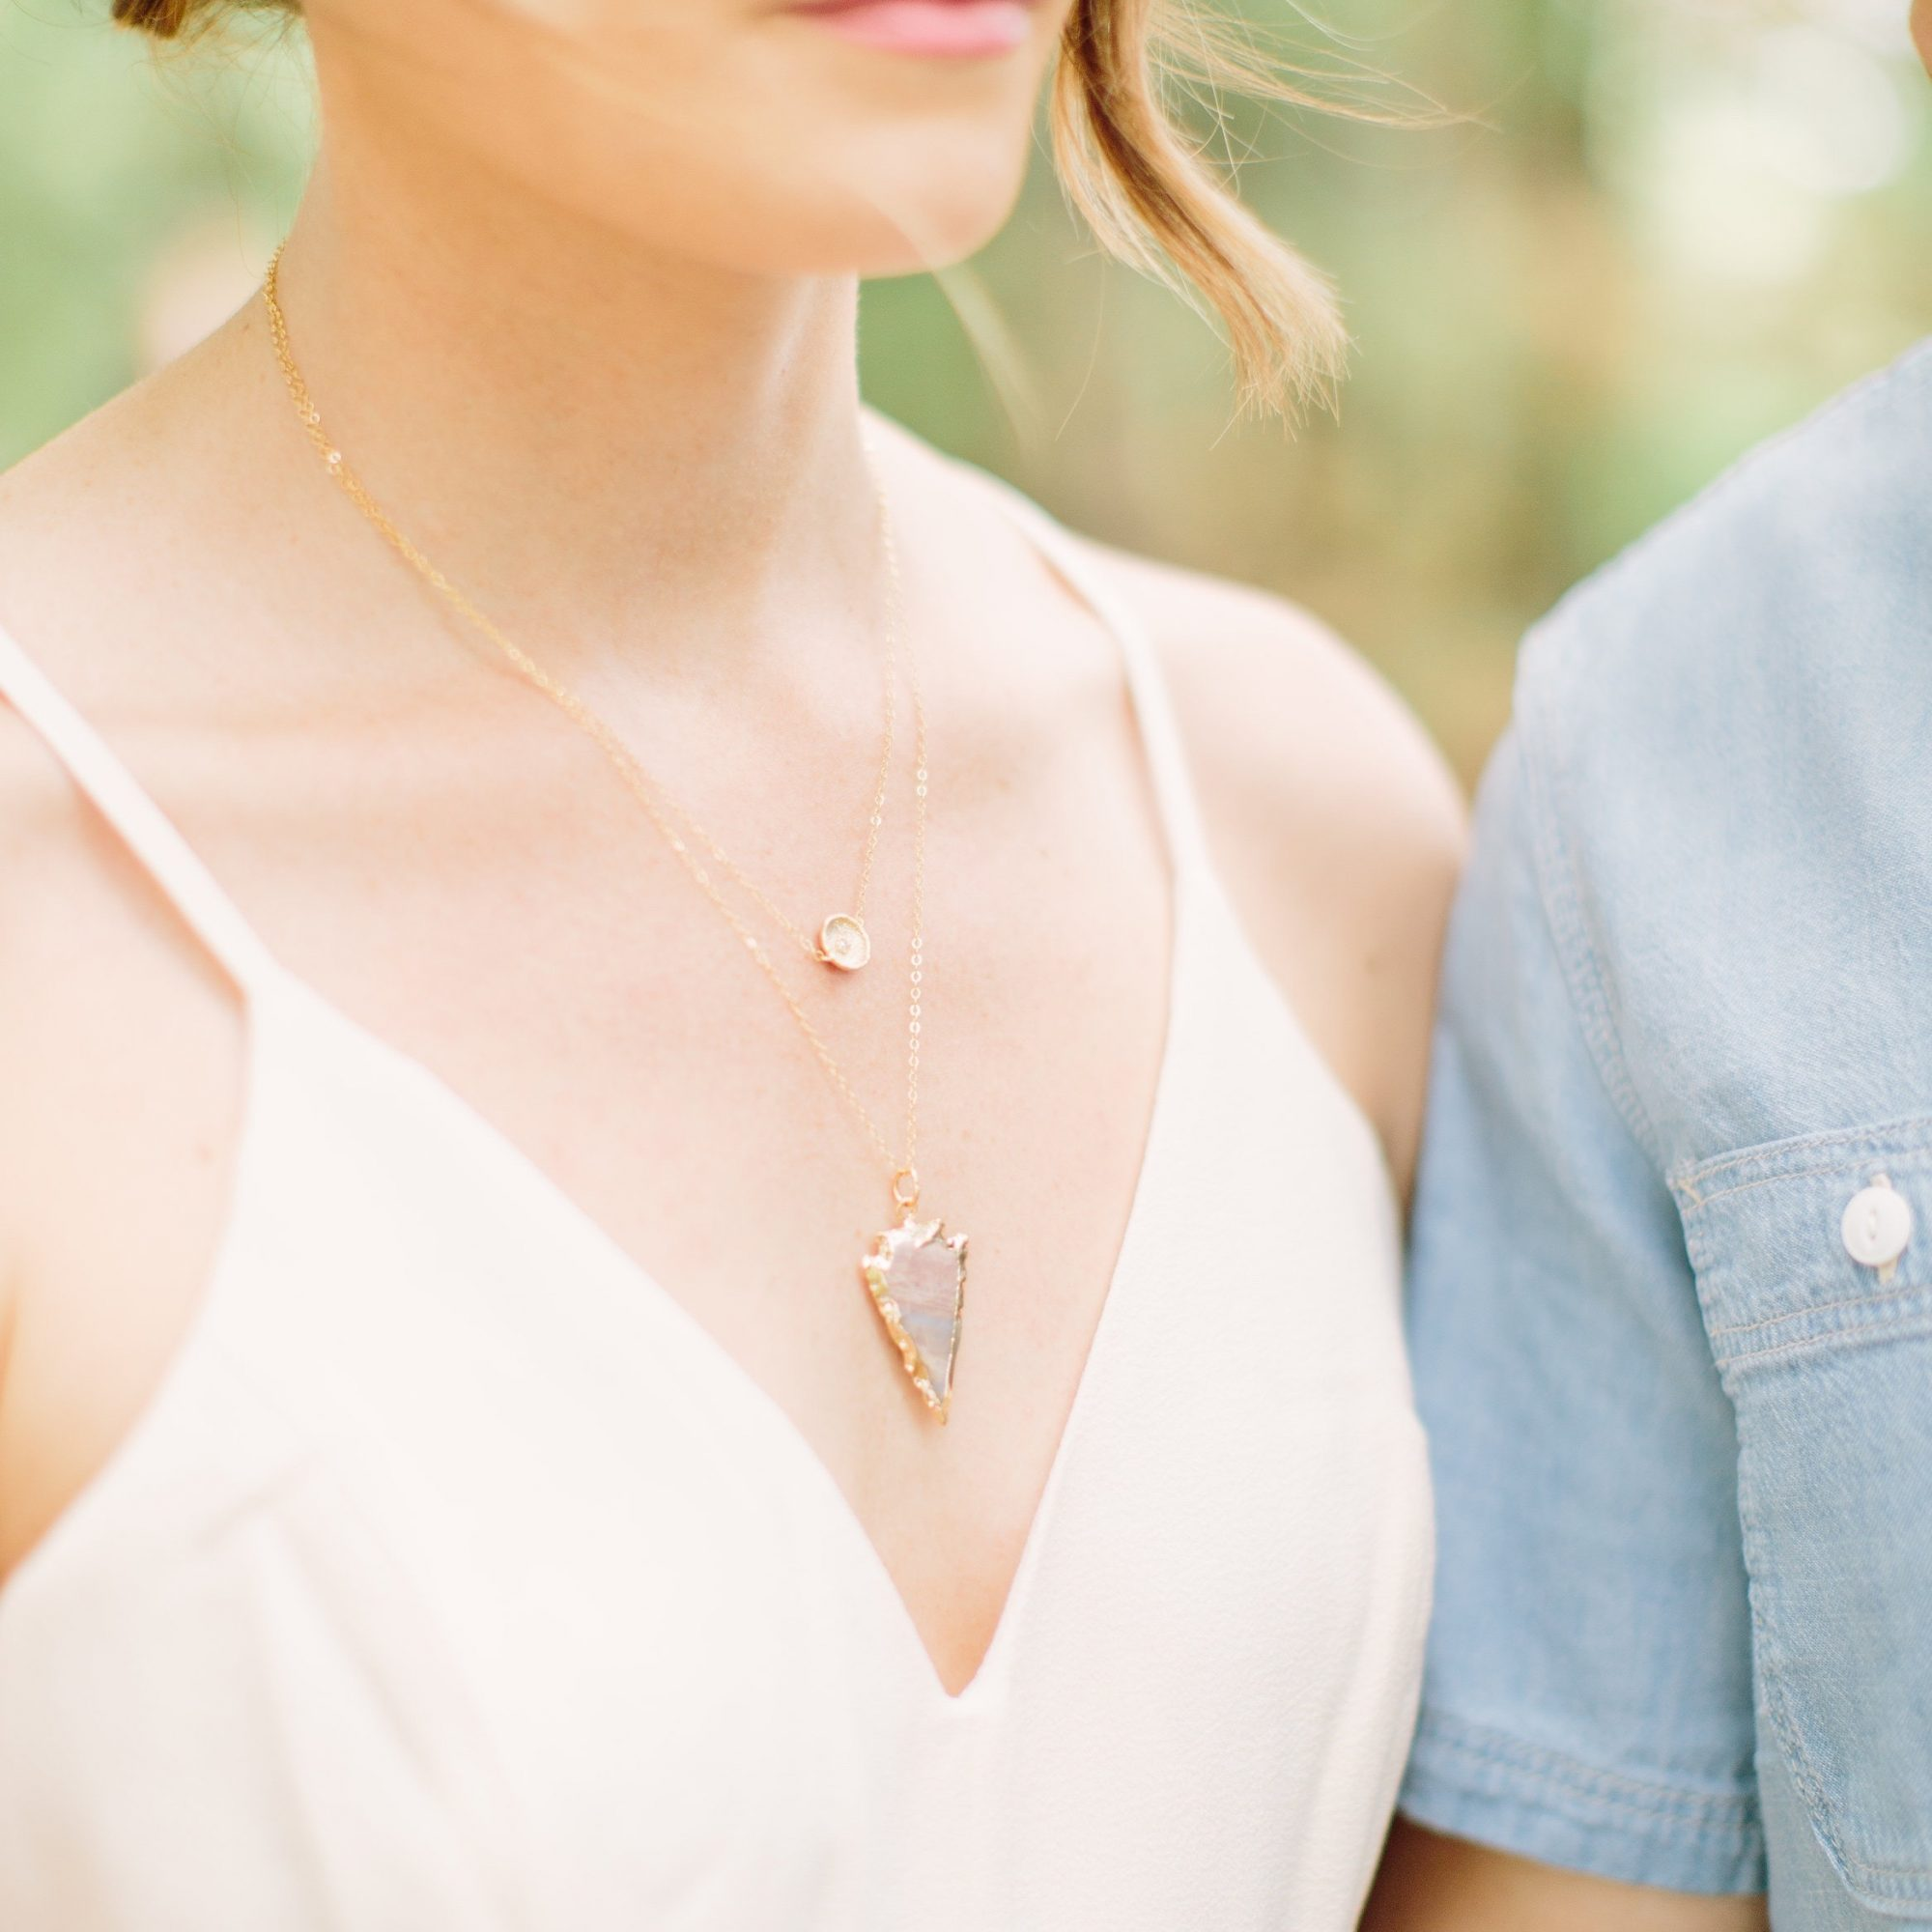 1a66e8d0b00cb Meet Landon Lacey of Landon Lacey Jewelry in Lincoln Park - Voyage ...